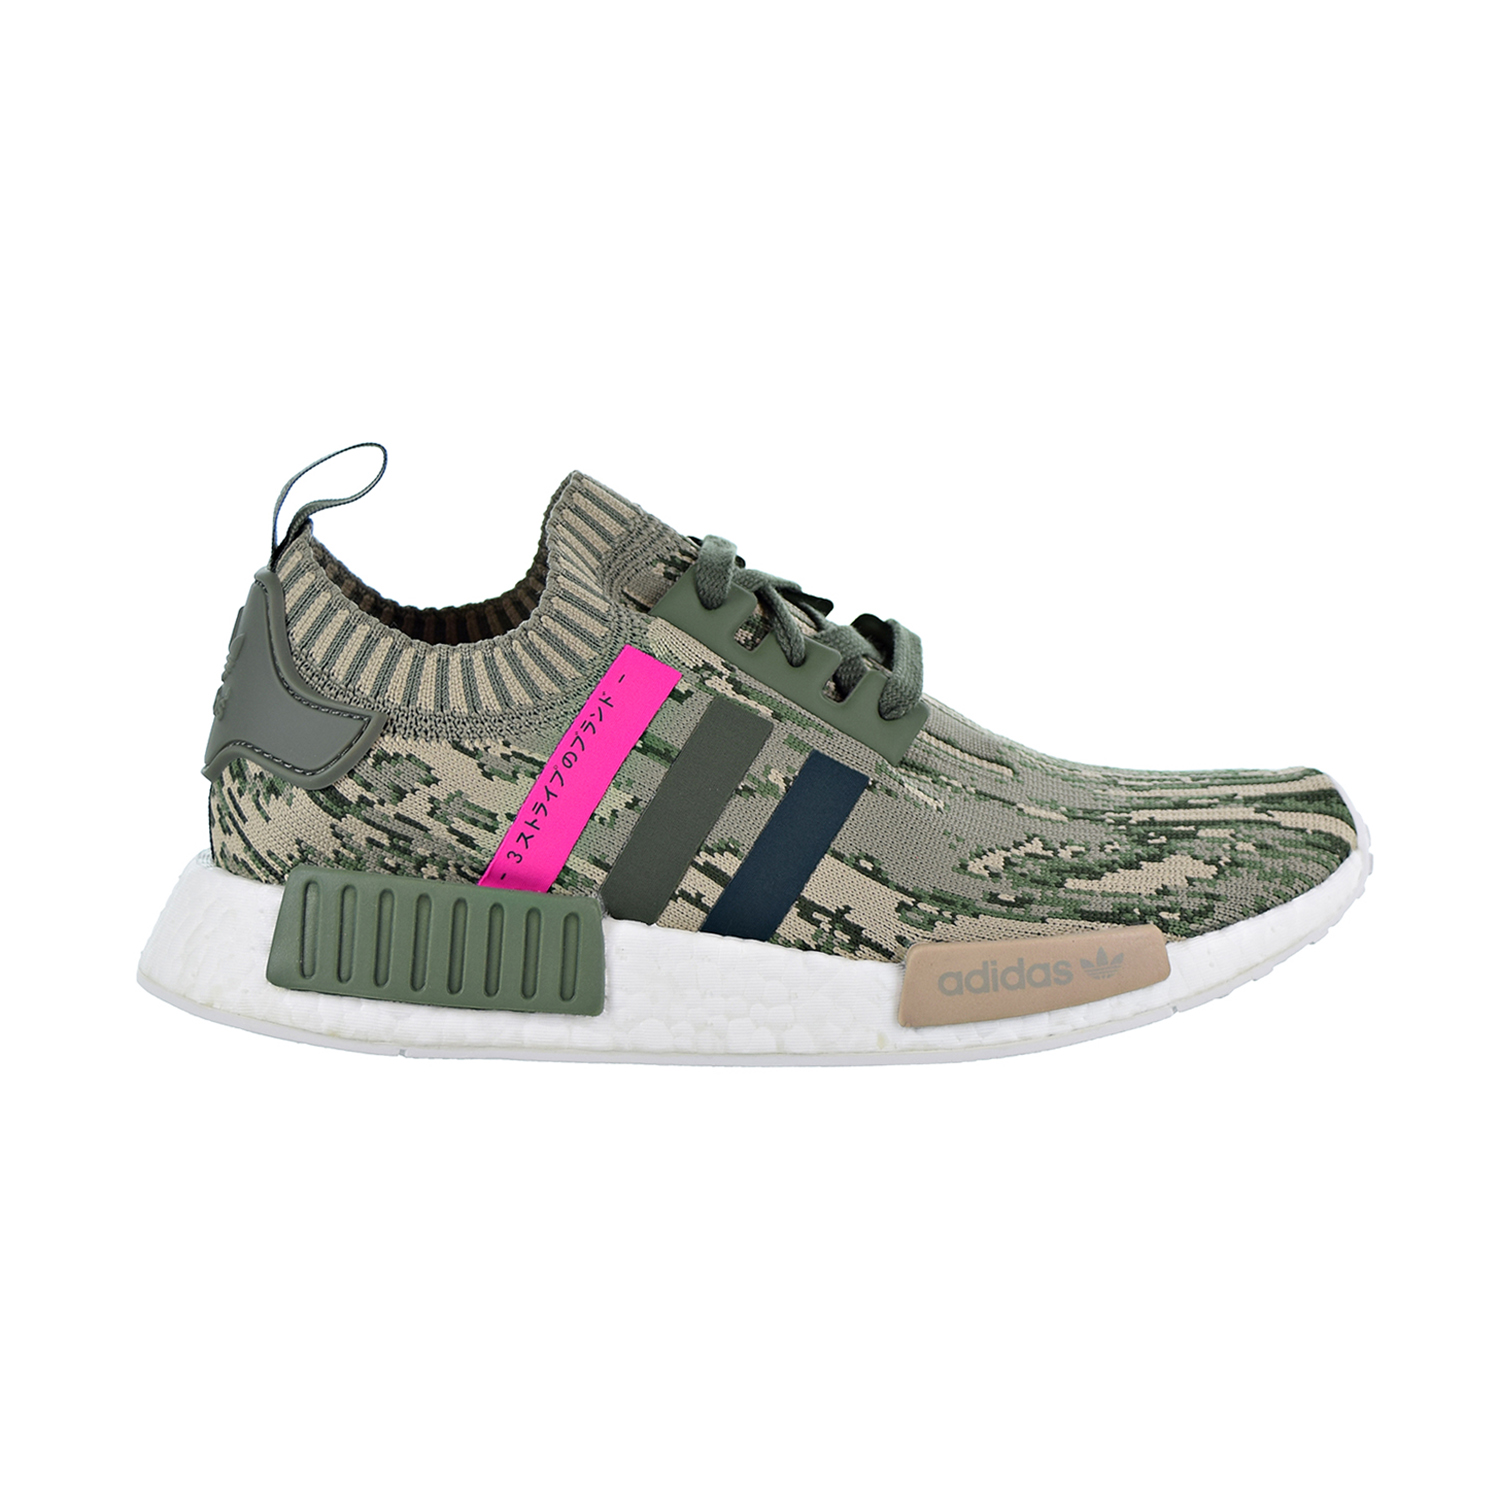 557ee7492 Adidas NMD R1 Primeknit Women s Shoes Green Pink Green BY9864